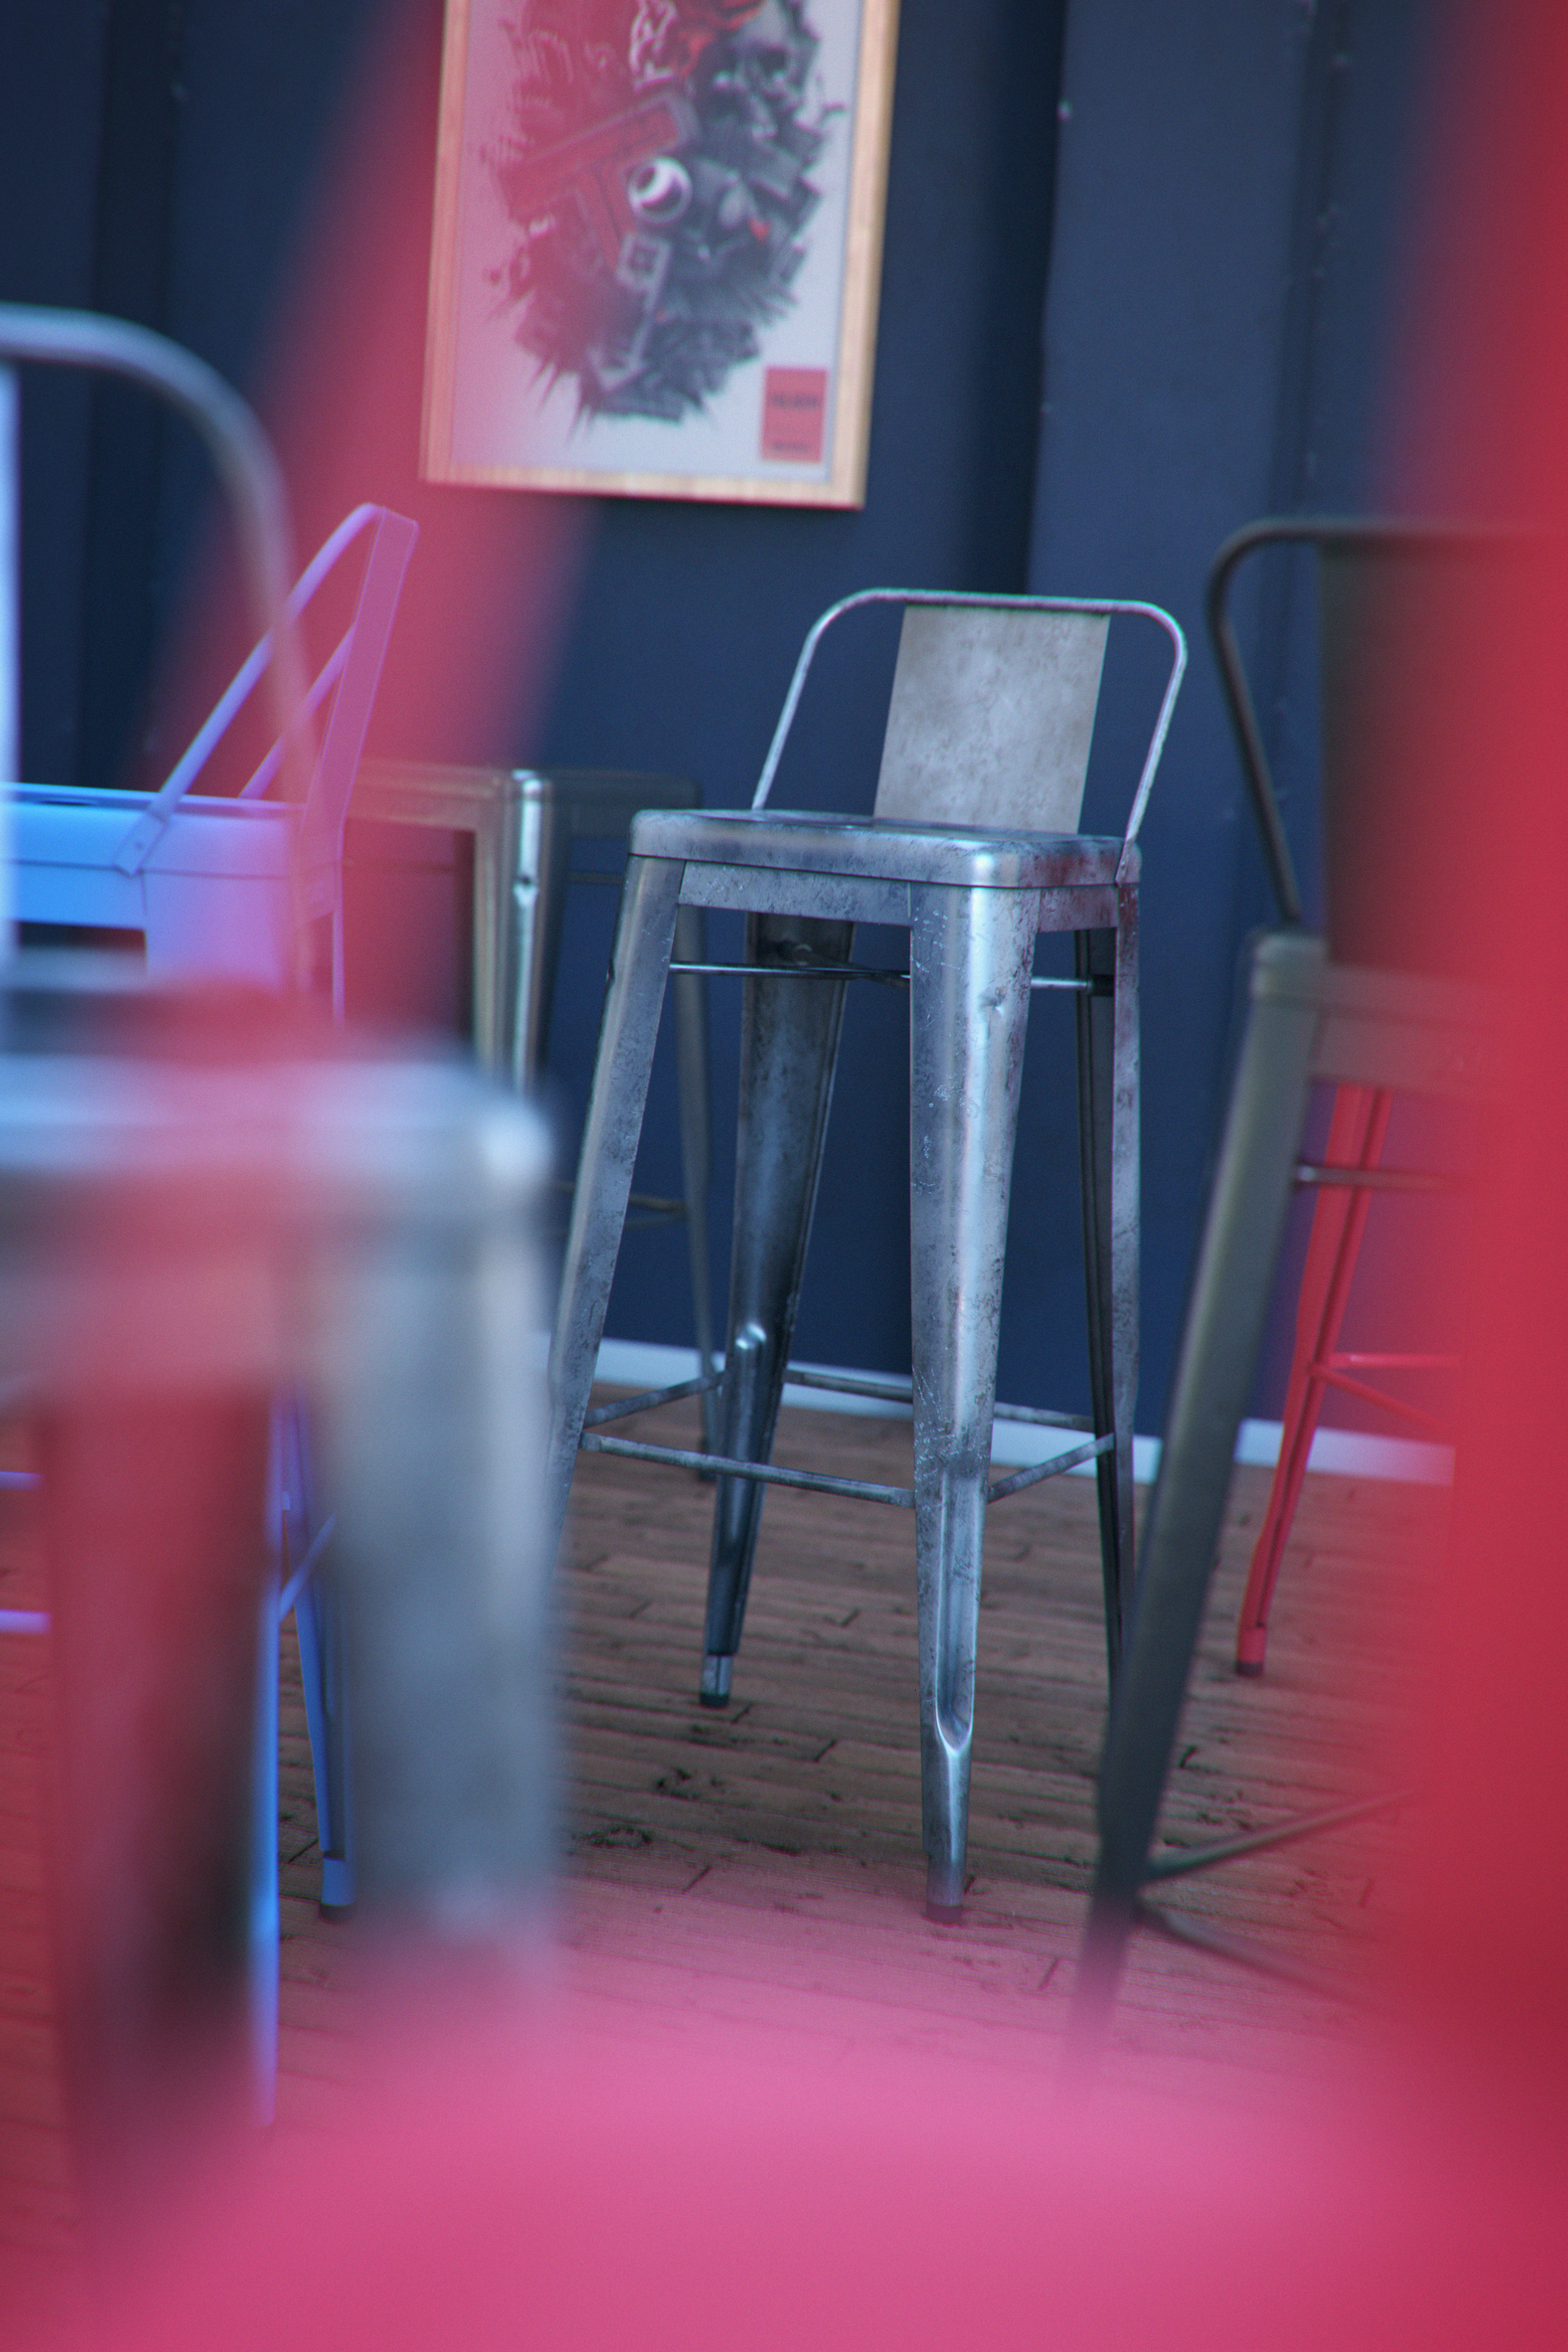 TOLIX H STOOLS - Modeling, texturing and rendering in cinema 4d (Octane render) - post-production with After Effects